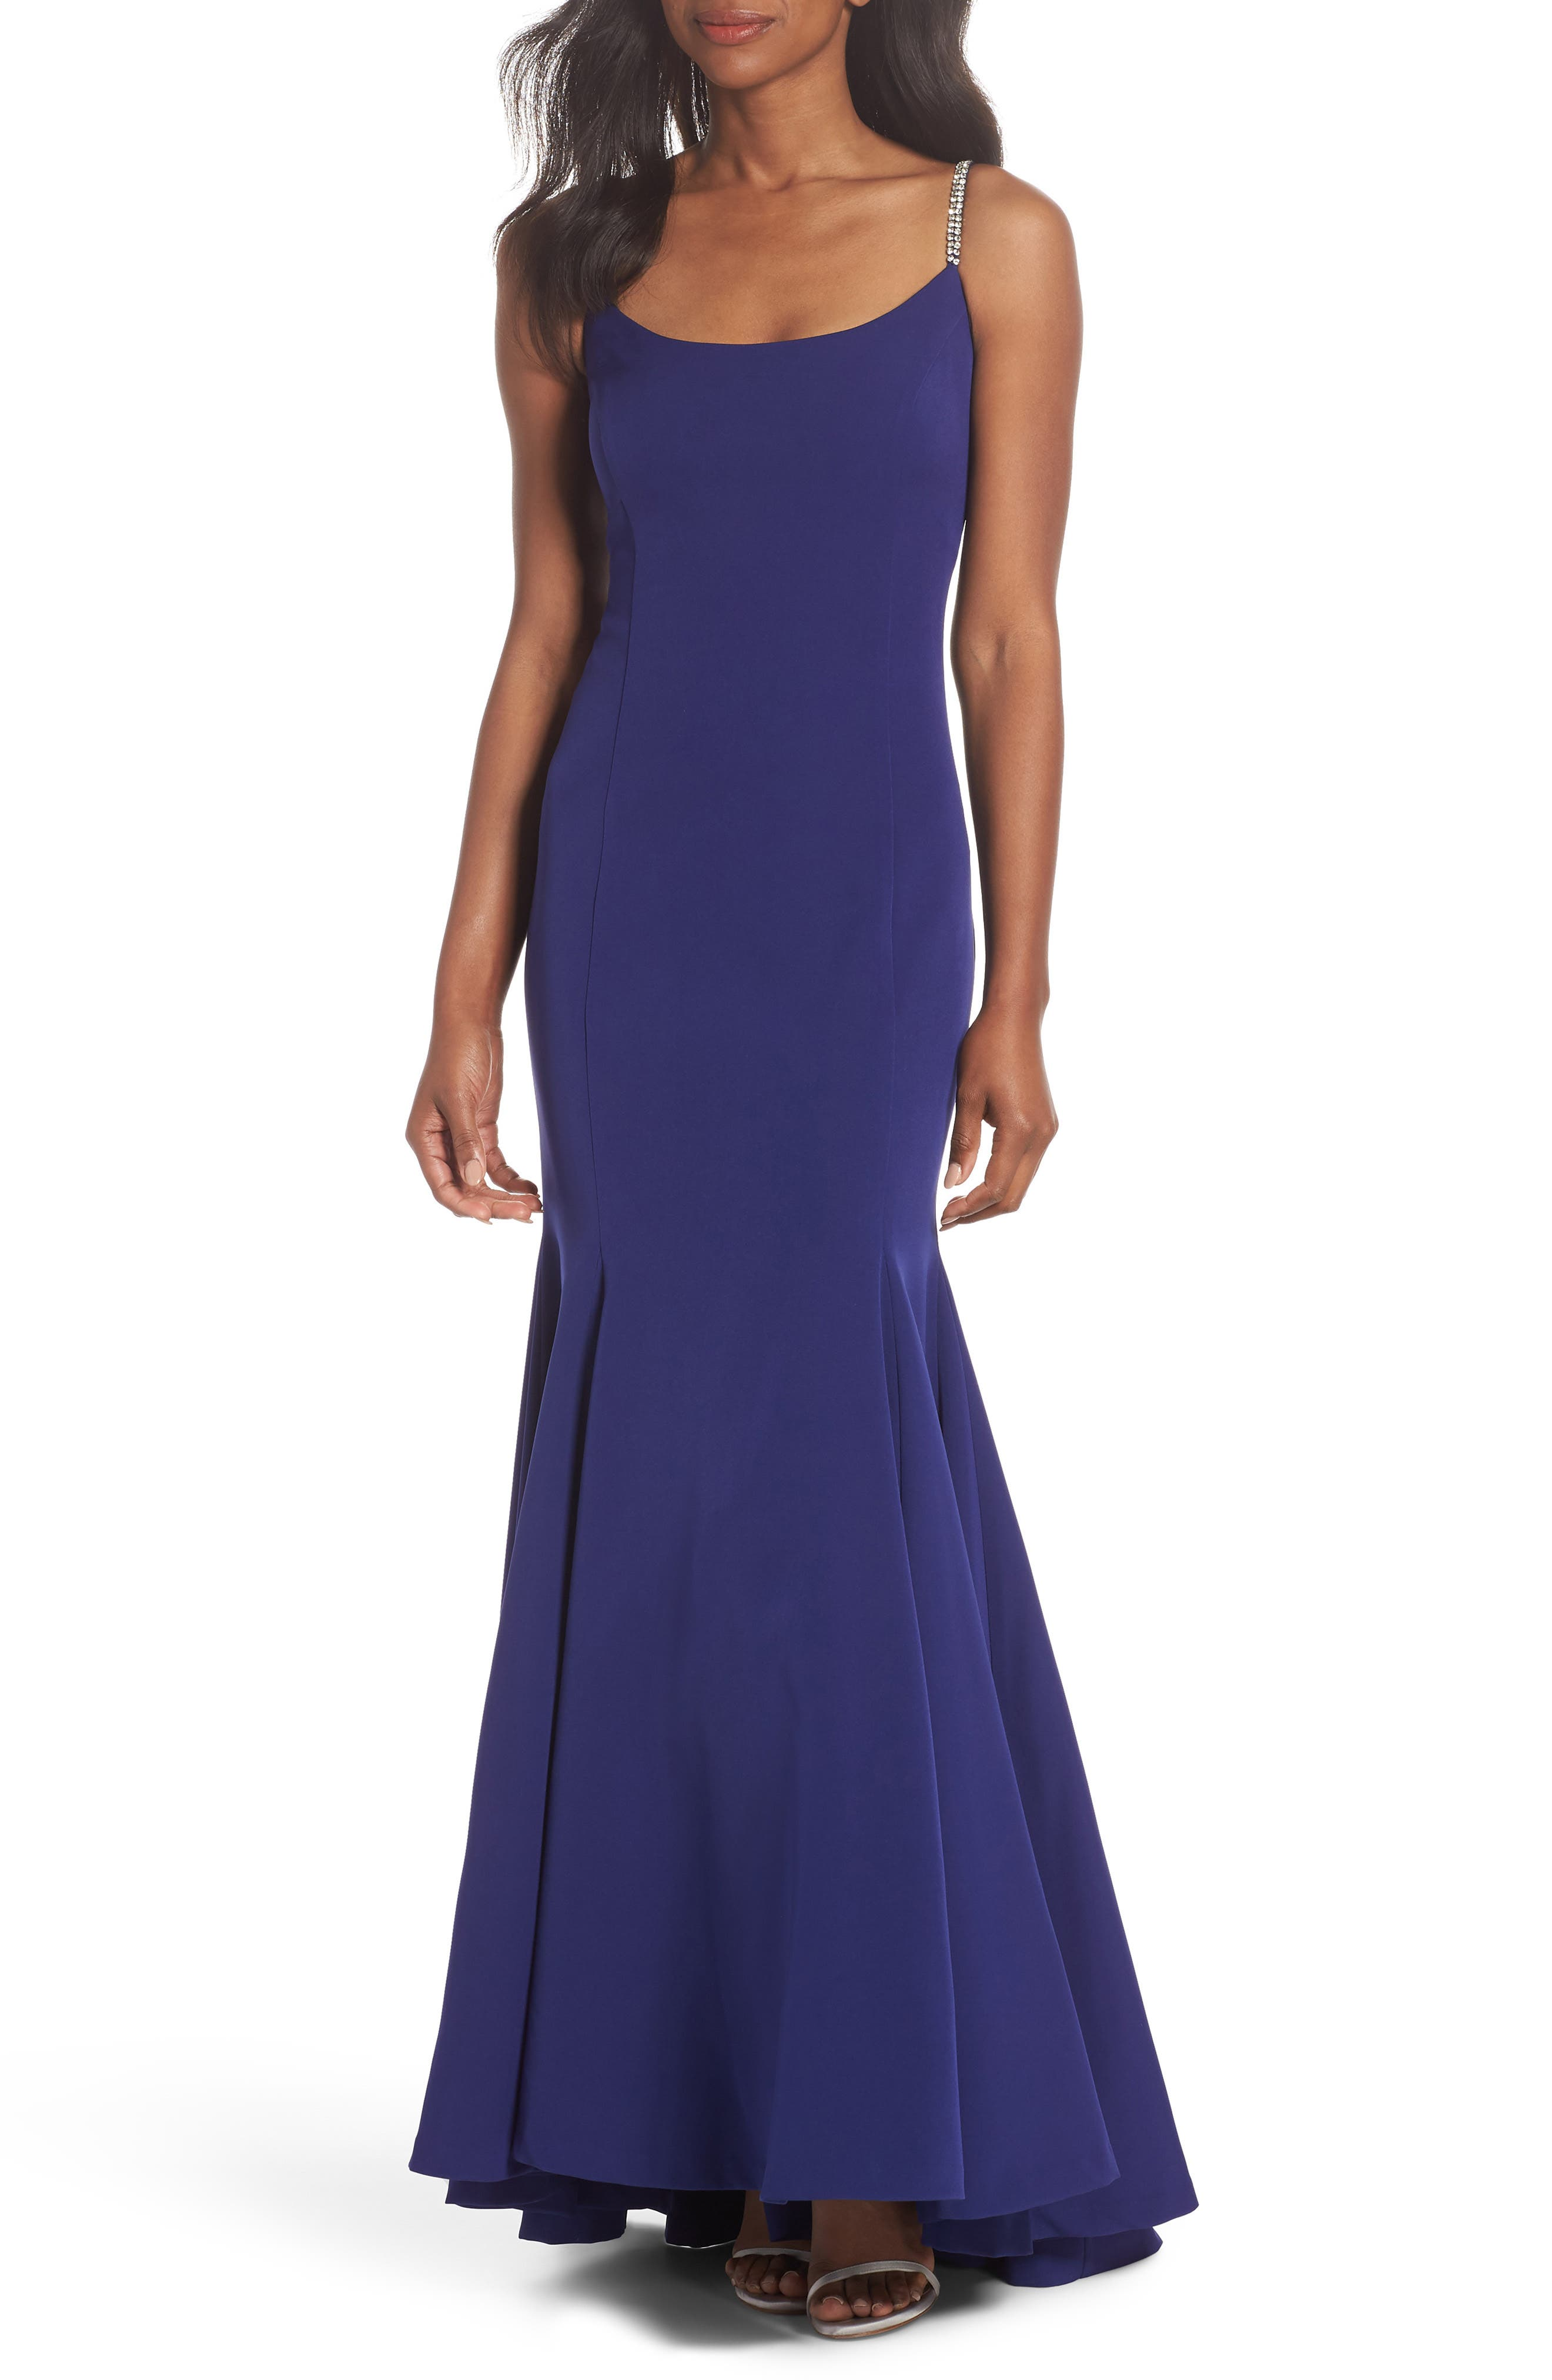 VINCE CAMUTO Laguna Crystal Strap Mermaid Gown, Main, color, 430